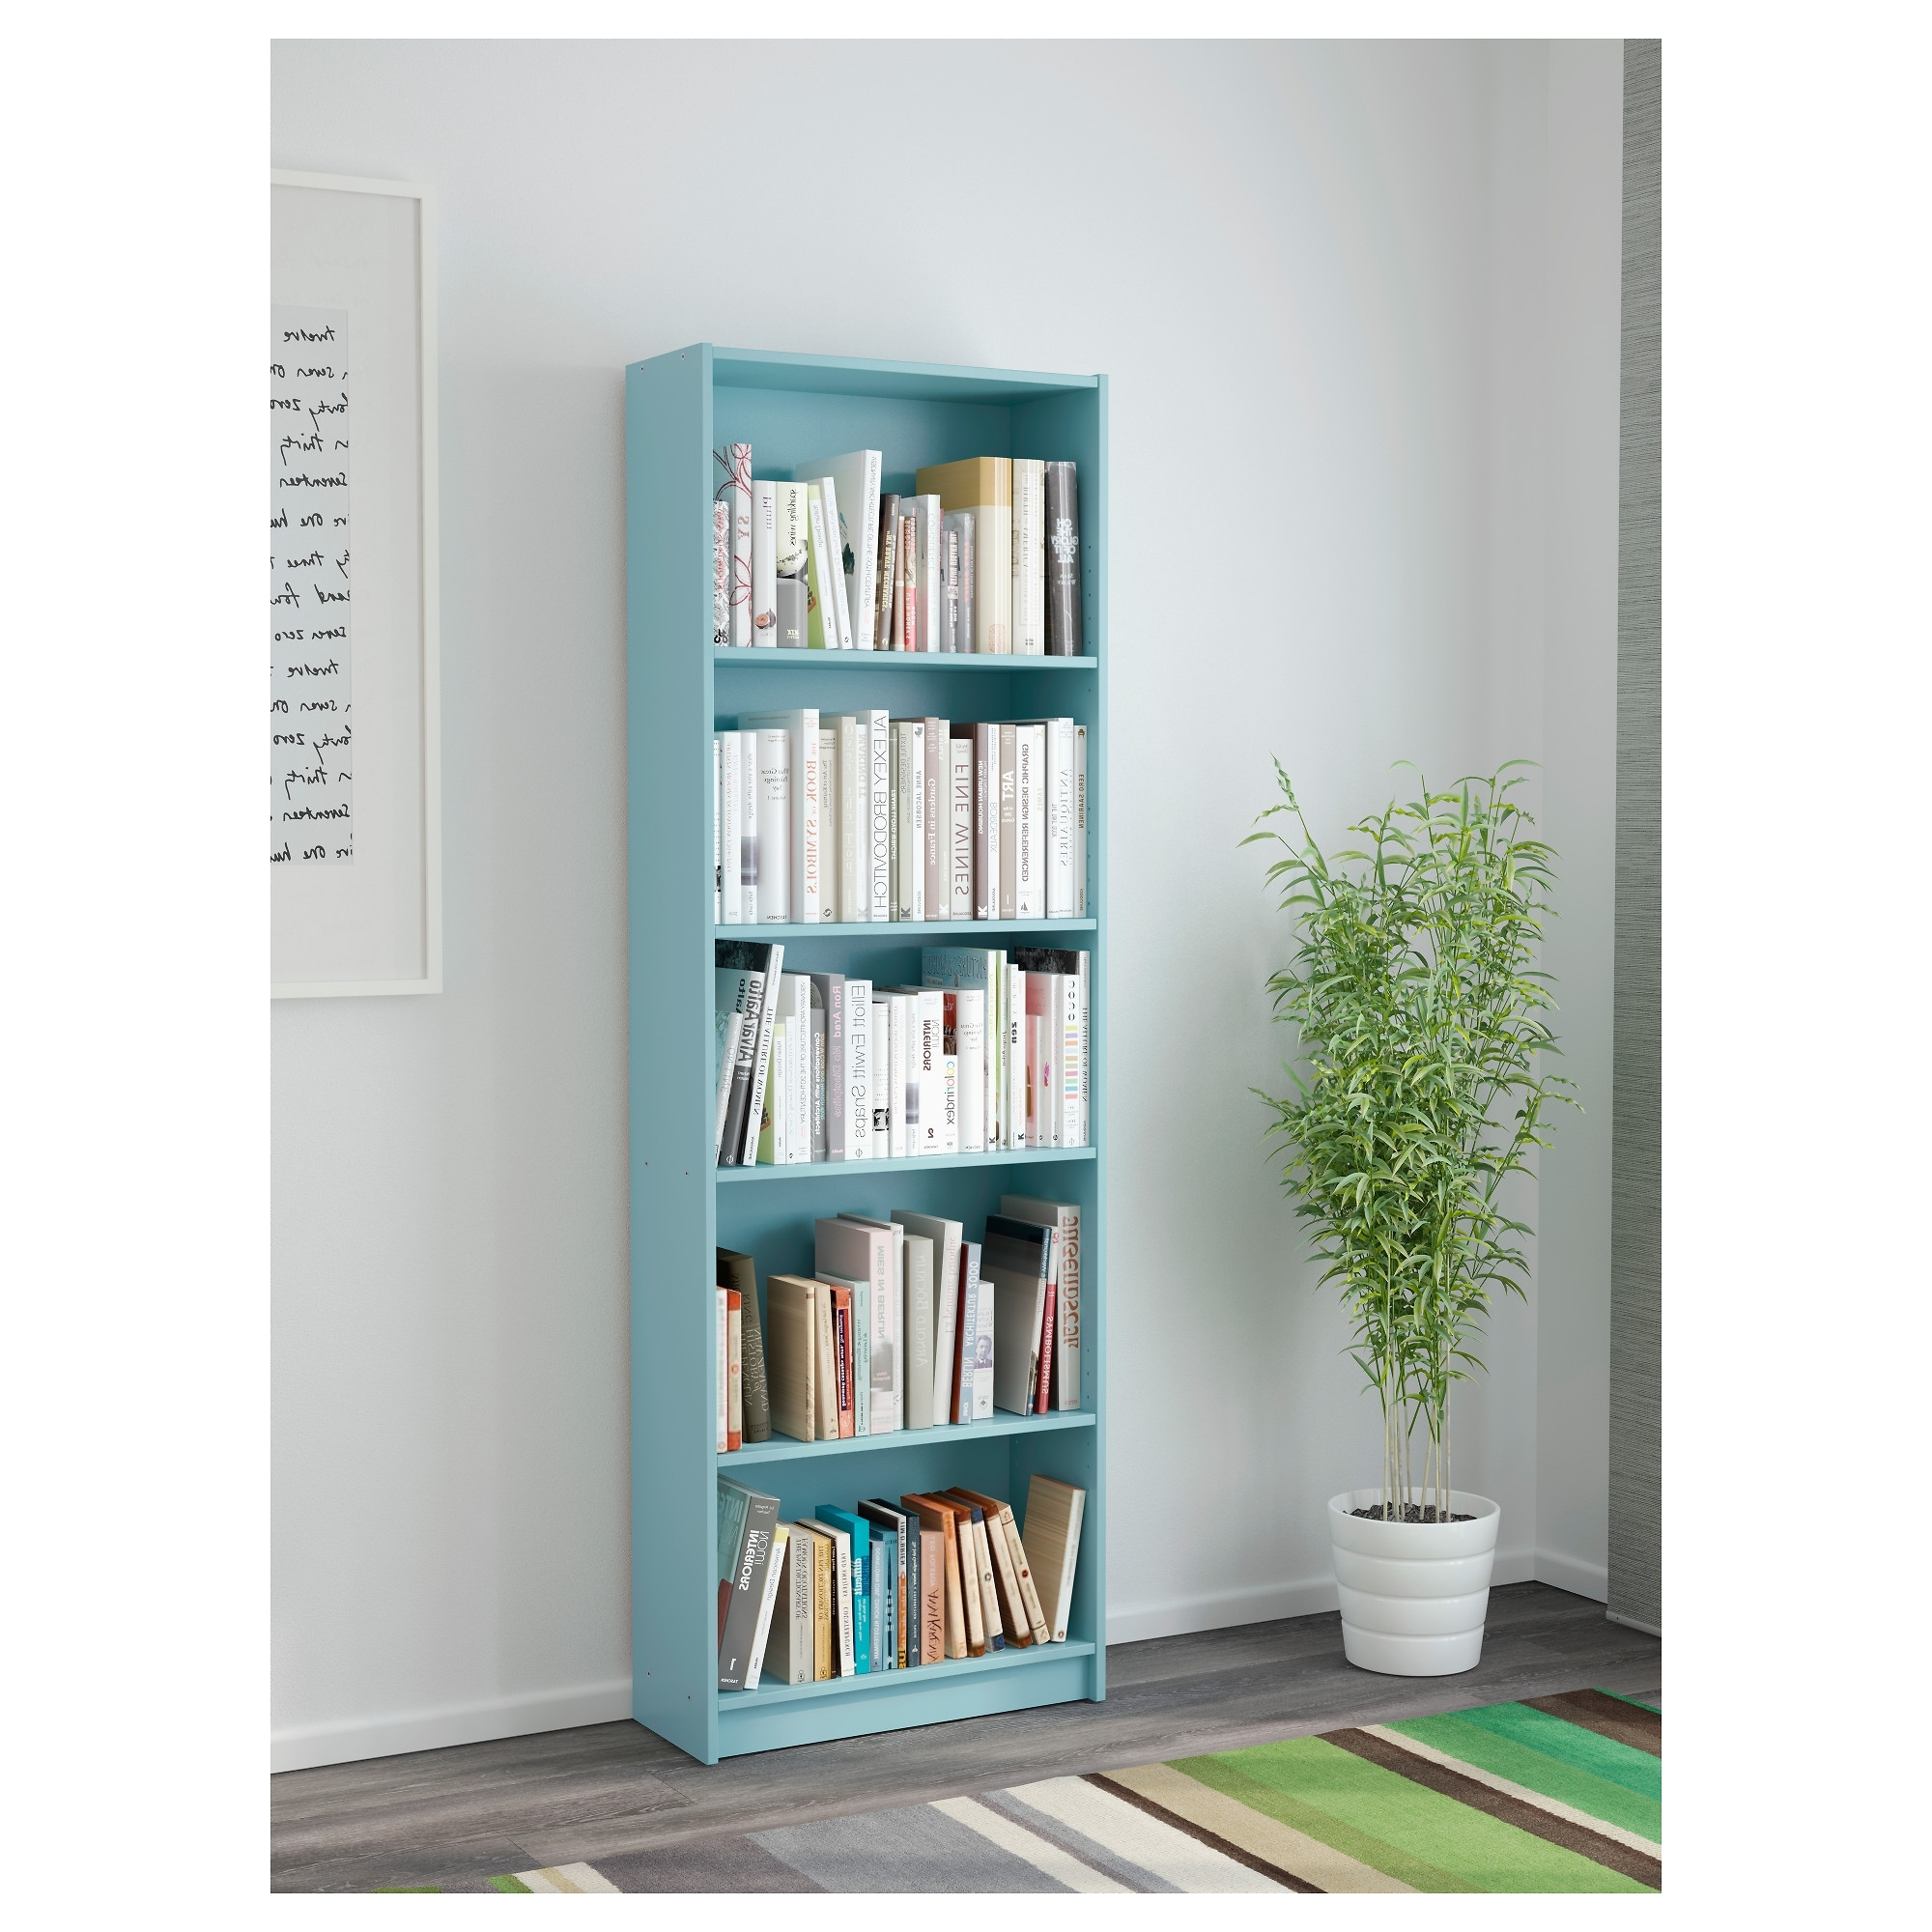 Other Uses For Bookcases Not Just A Housewife Turn Bookshelf Into In Most Popular Blue Bookcases (View 11 of 15)